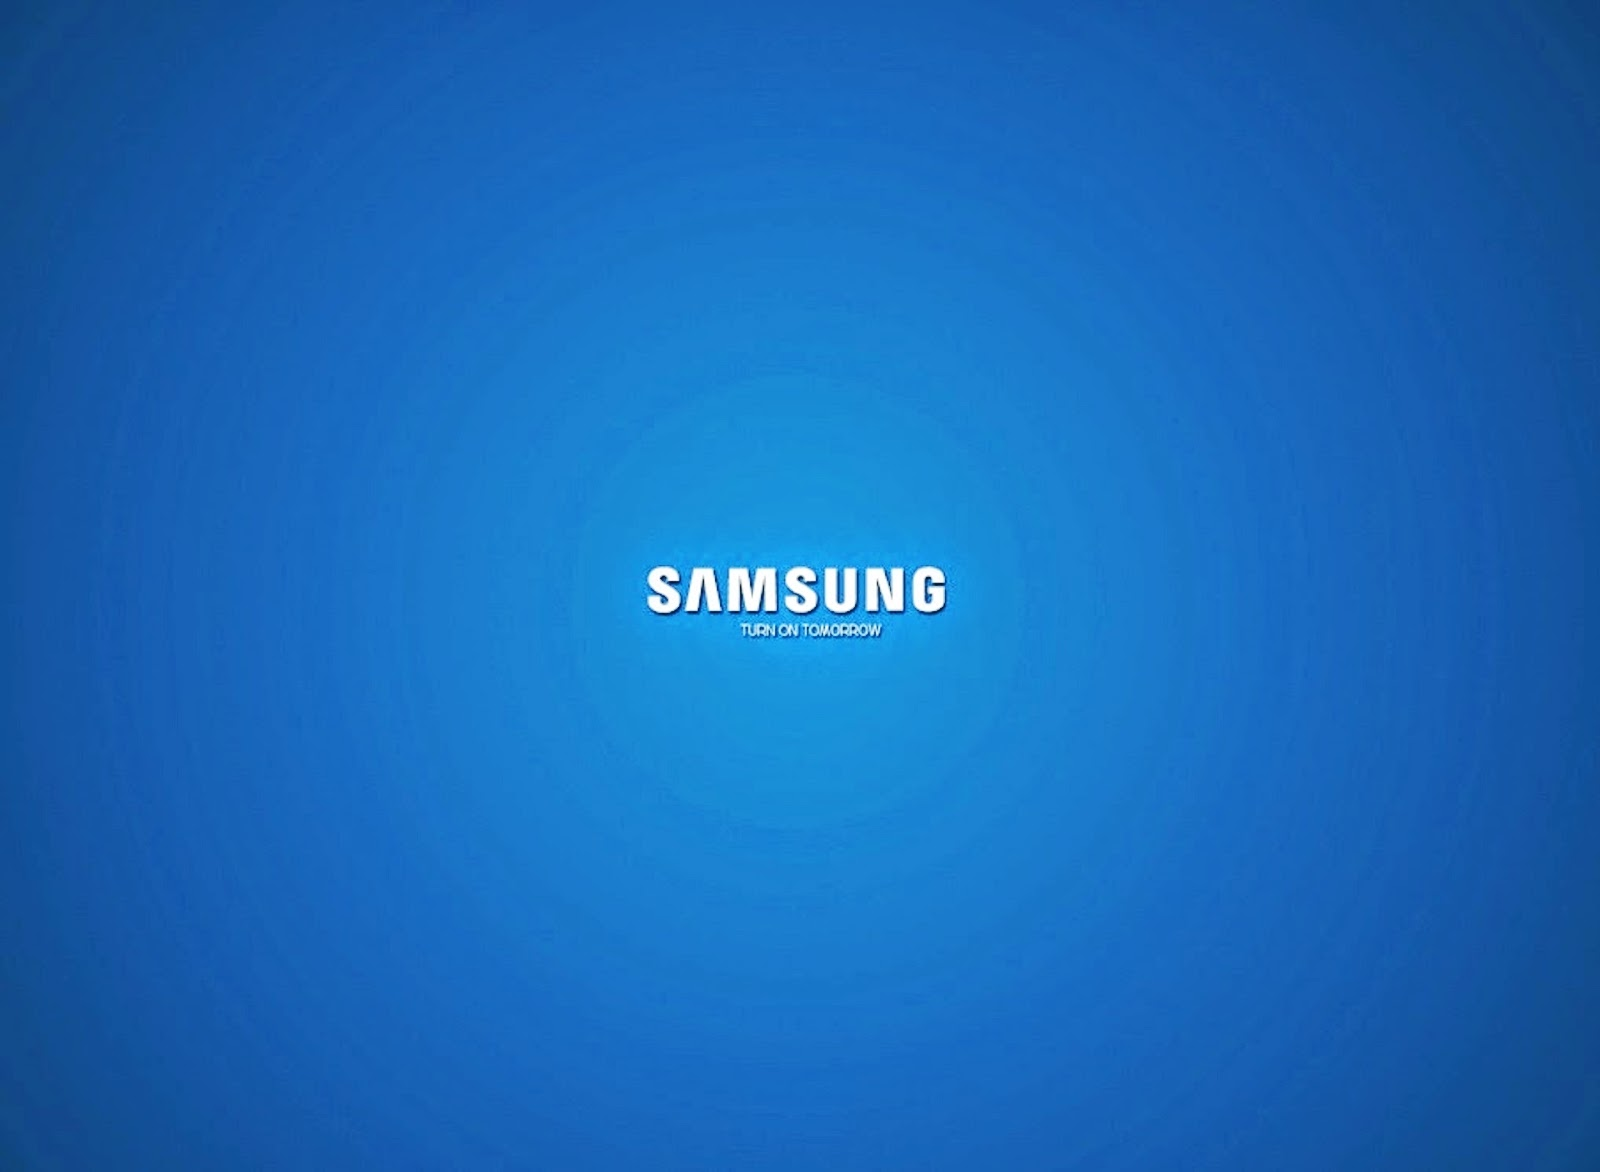 Samsung galaxy logo wallpaper hd